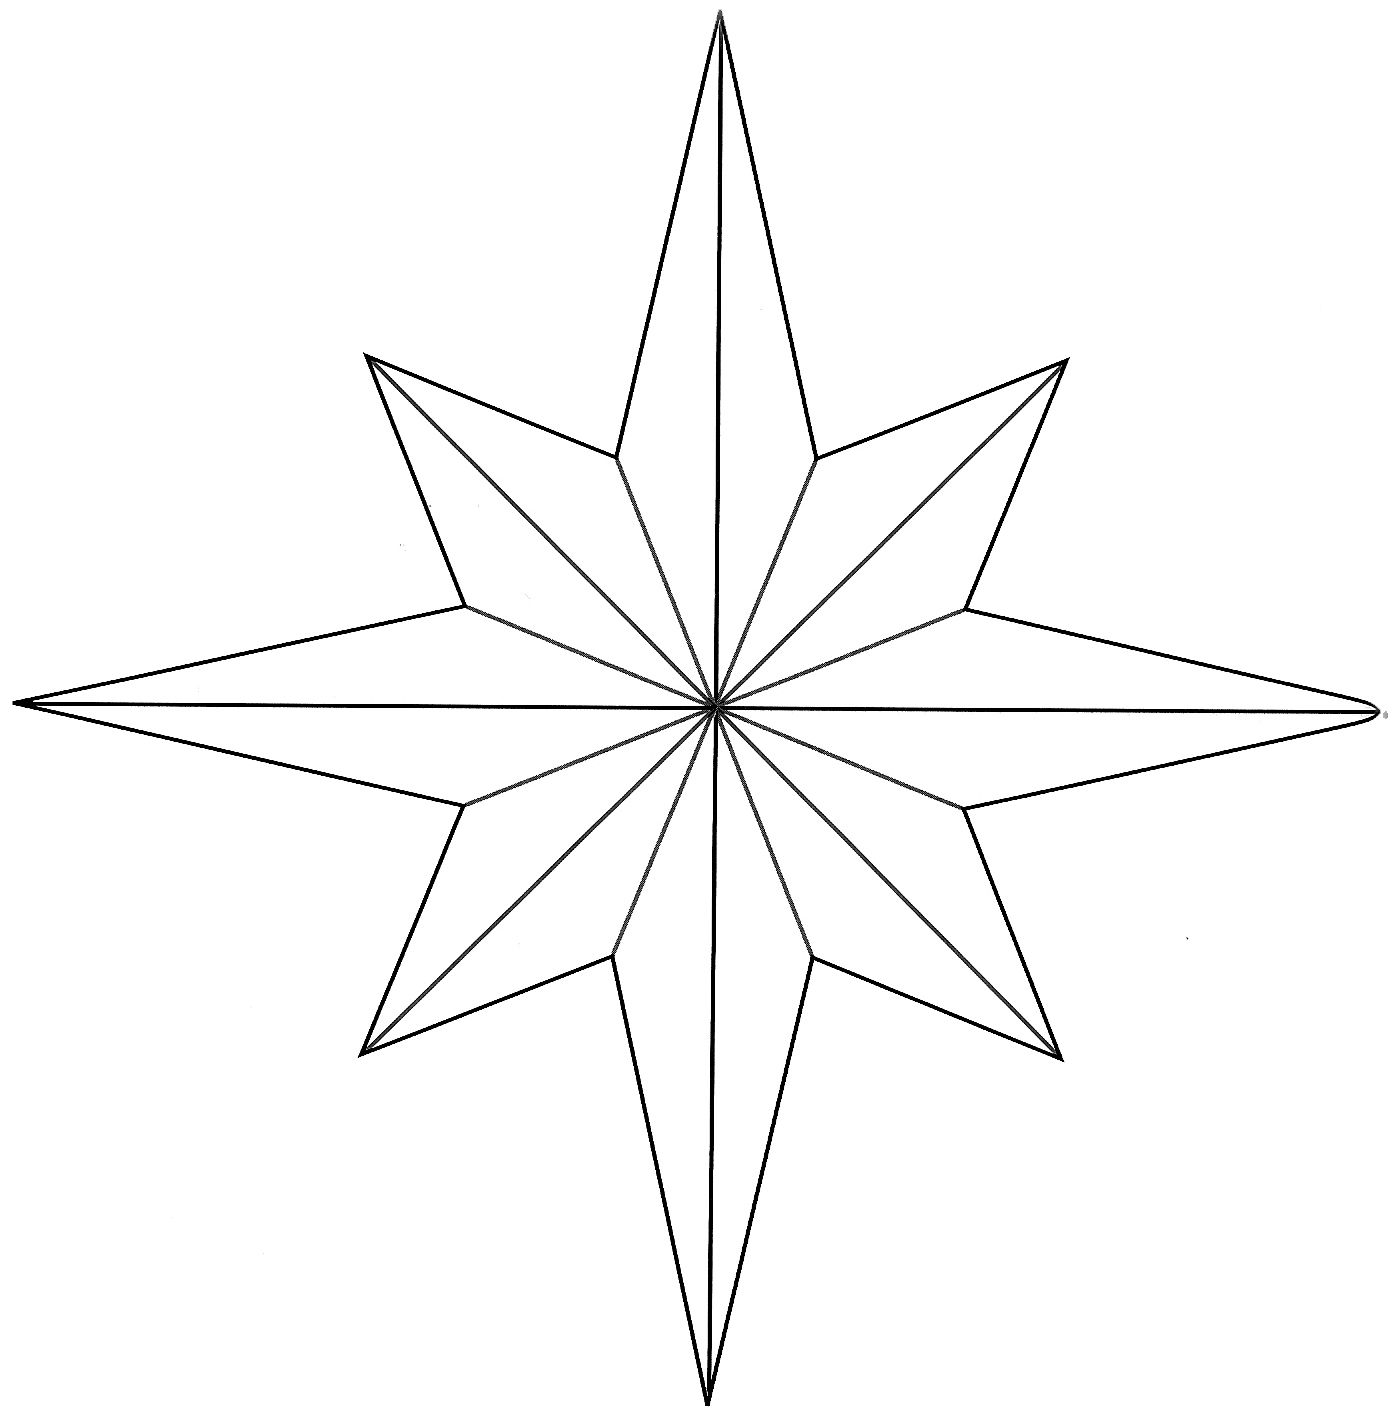 I Wanted To Share This 8 Point Star Template That I Came Across In A